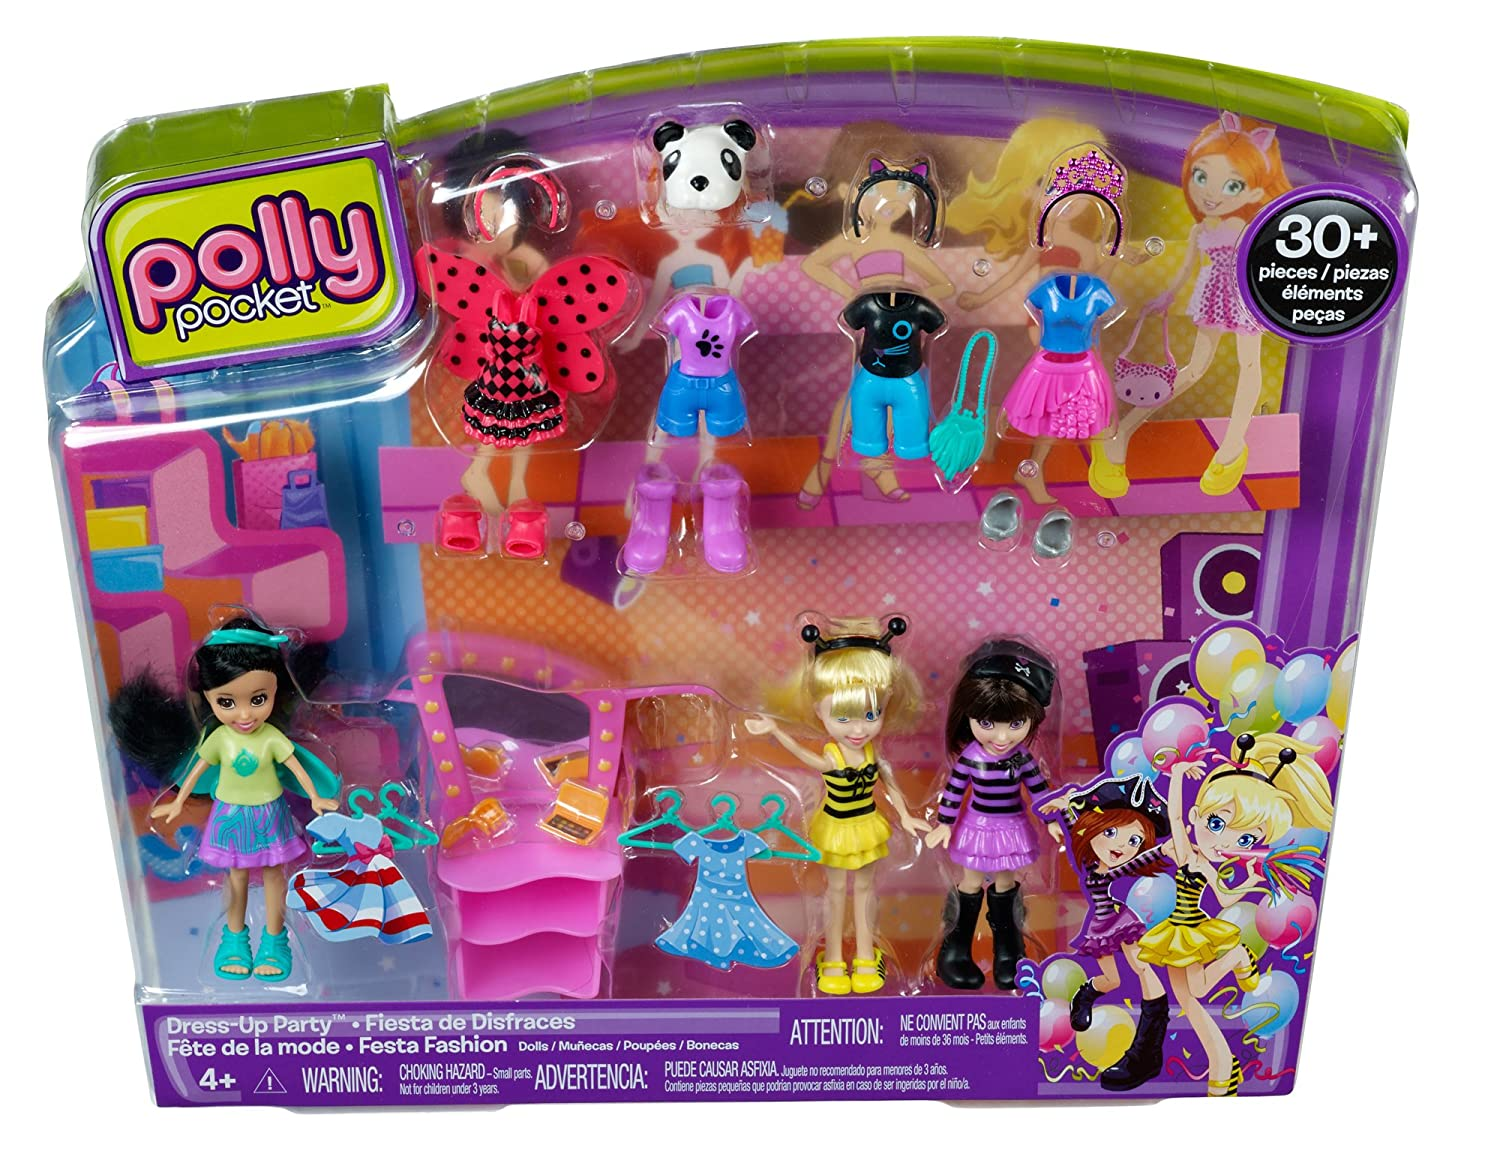 Amazon.com: Polly Pocket Dress-Up Party Doll Pack: Toys & Games